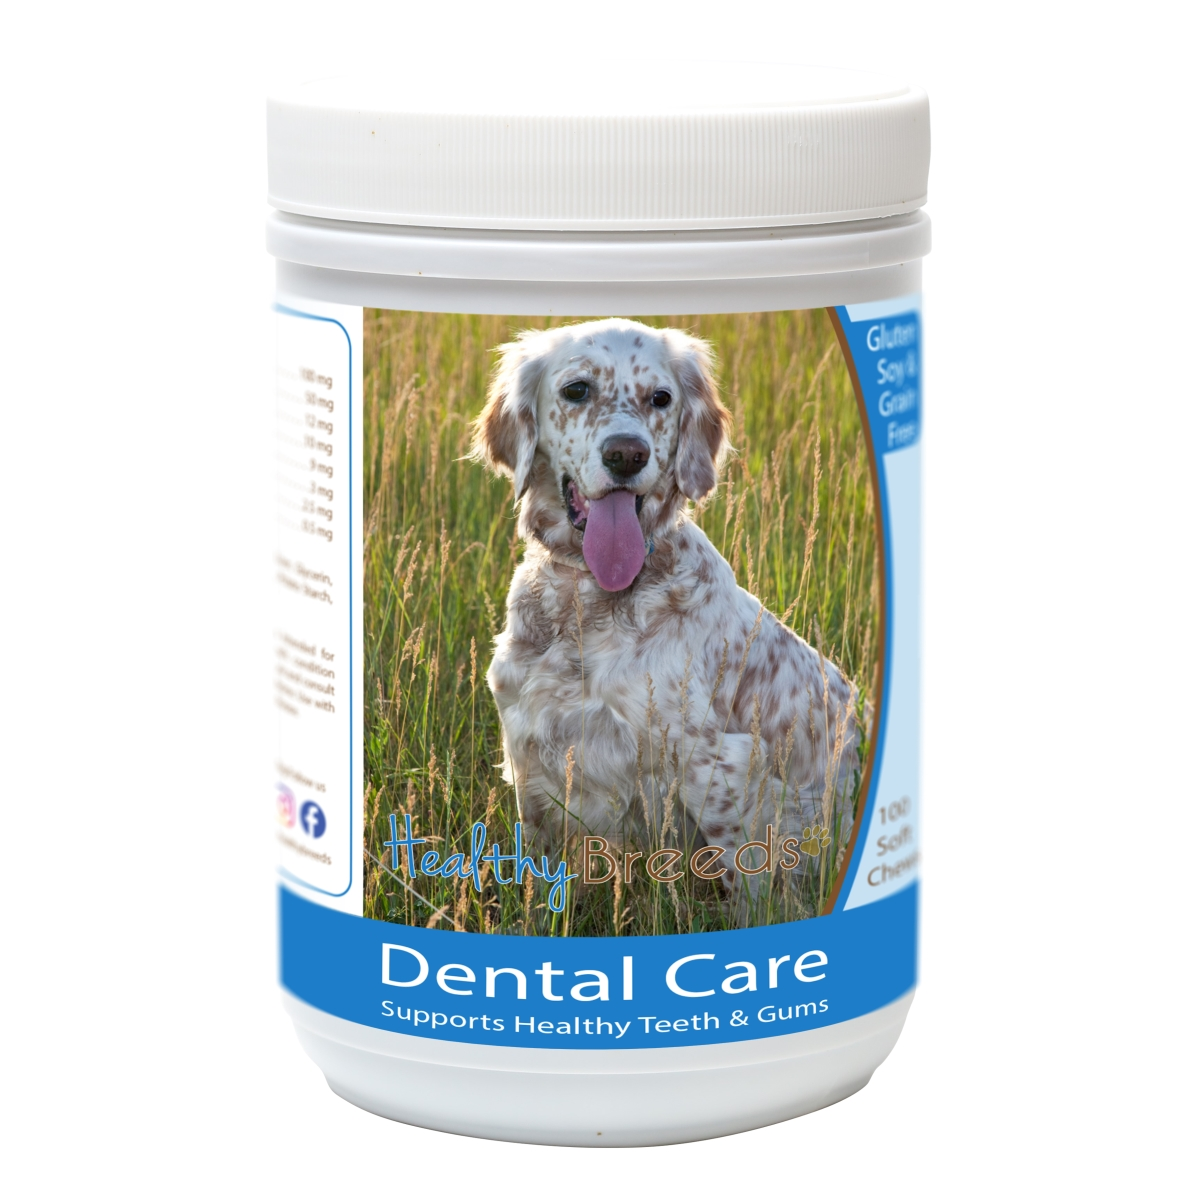 Healthy Breeds 840235162926 English Setter Breath Care Soft Chews for Dogs - 60 Count